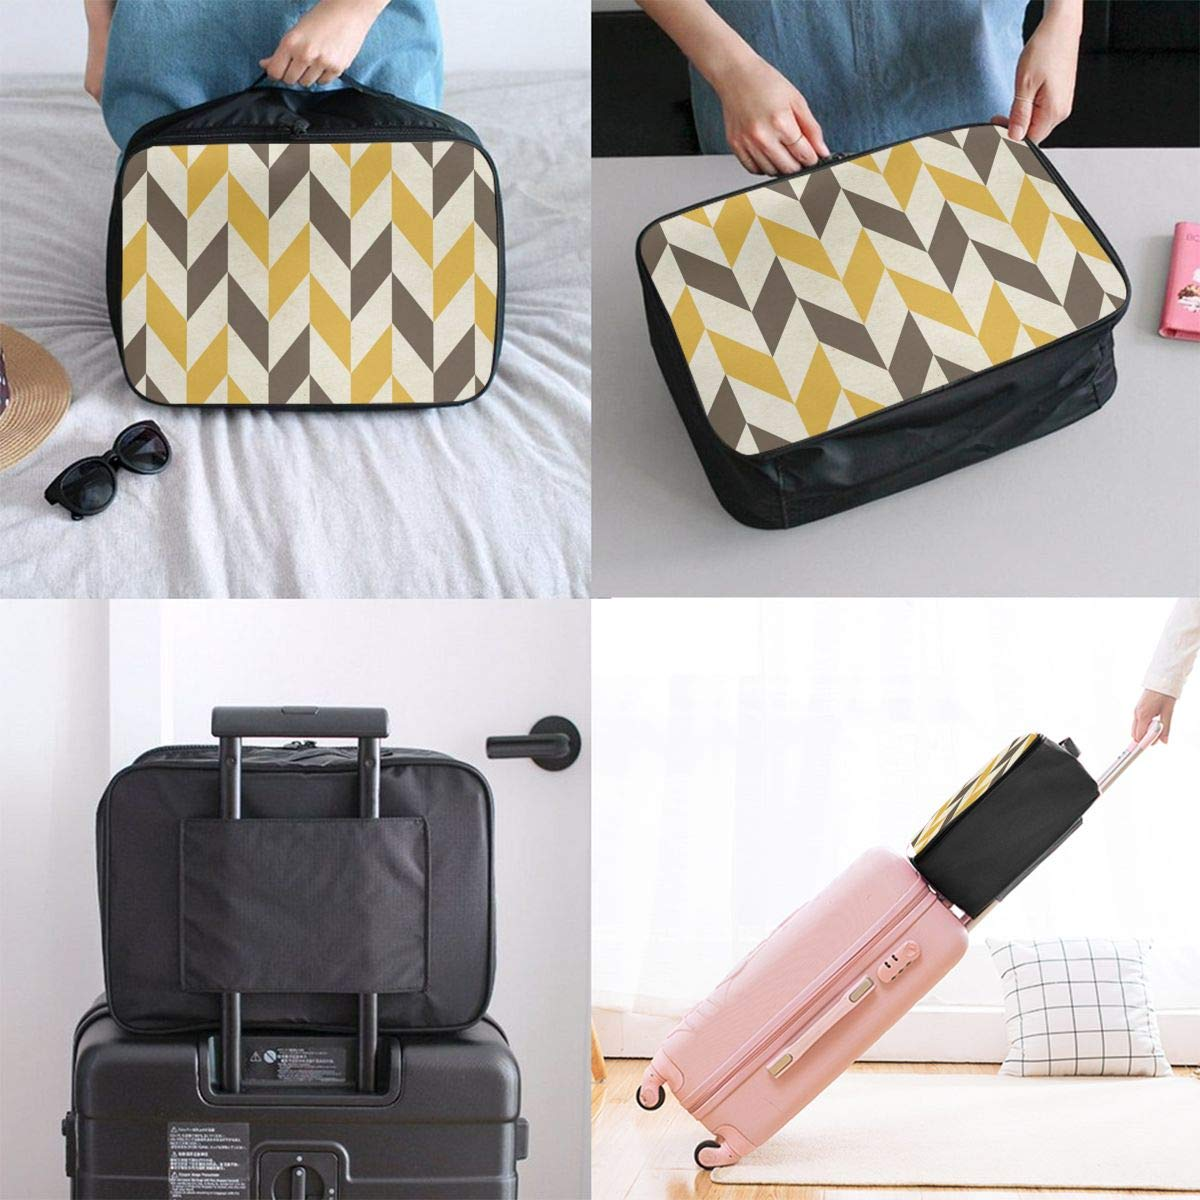 Contrast Color Geometric Pattern Travel Luggage Storage Bag Duffel Bag Handle Makeup Bag Fashion Lightweight Large Capacity Portable Luggage Bag